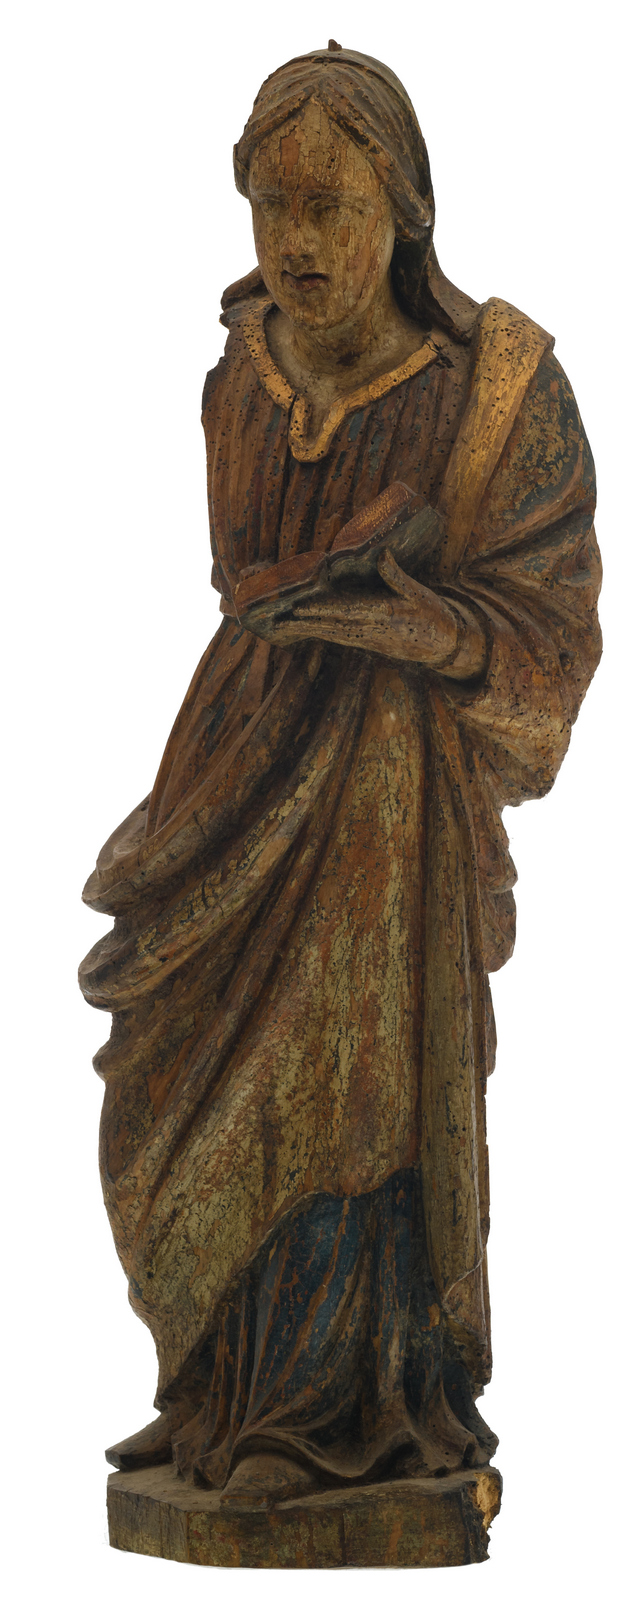 An 18thC probably Southern European polychrome decorated and gilt wooden sculpture depicting a saint, H 74,5 cm